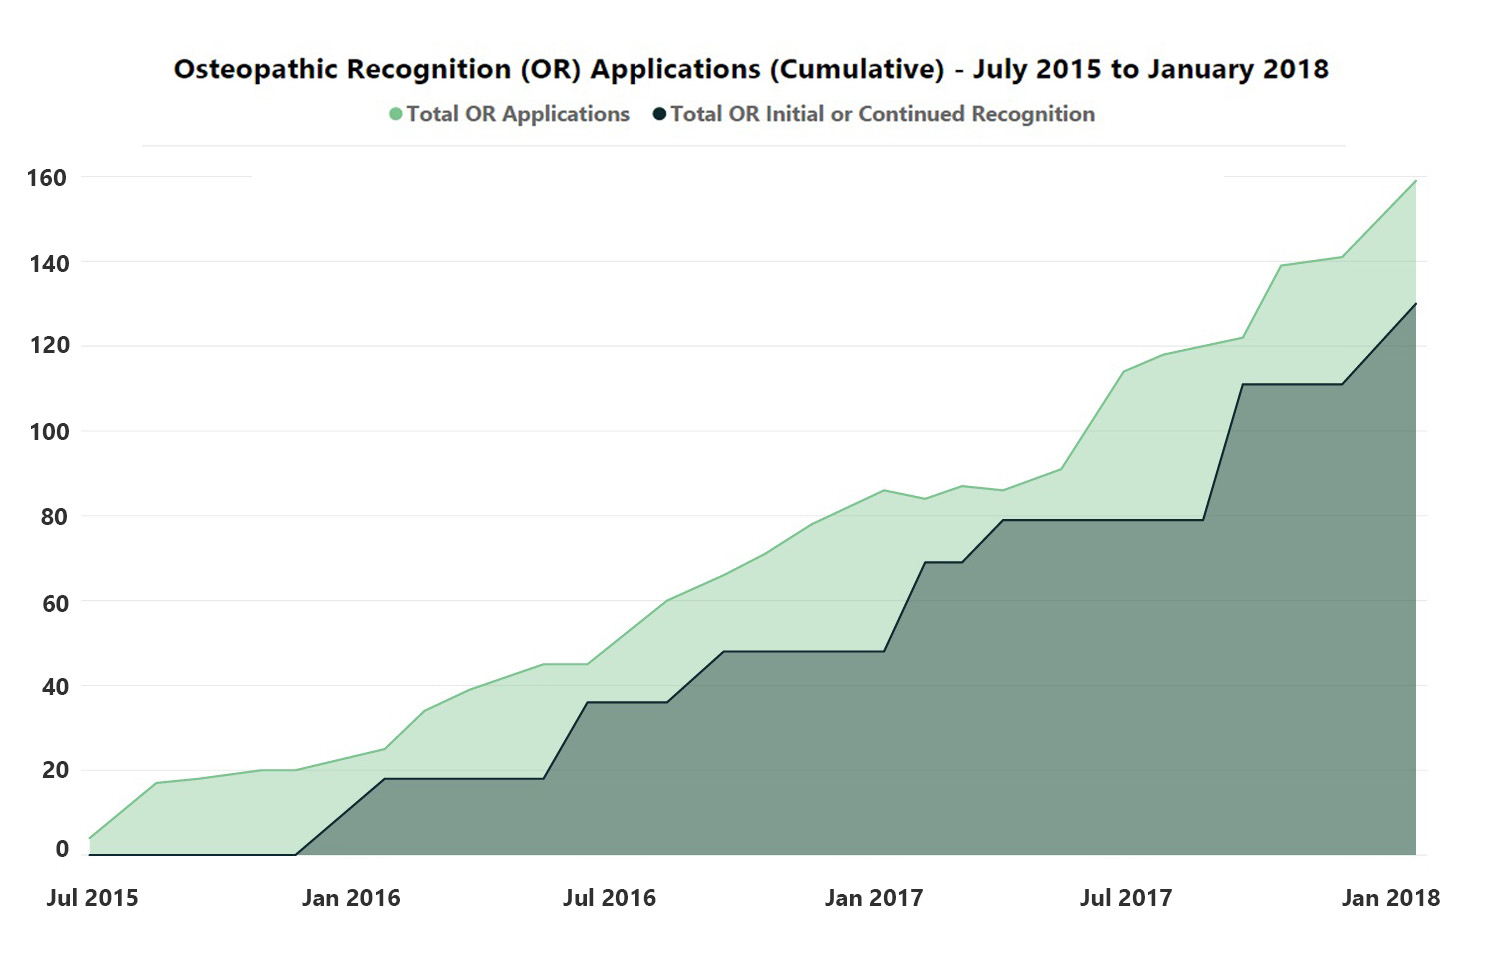 OR Applications - July 2015 to January 2018